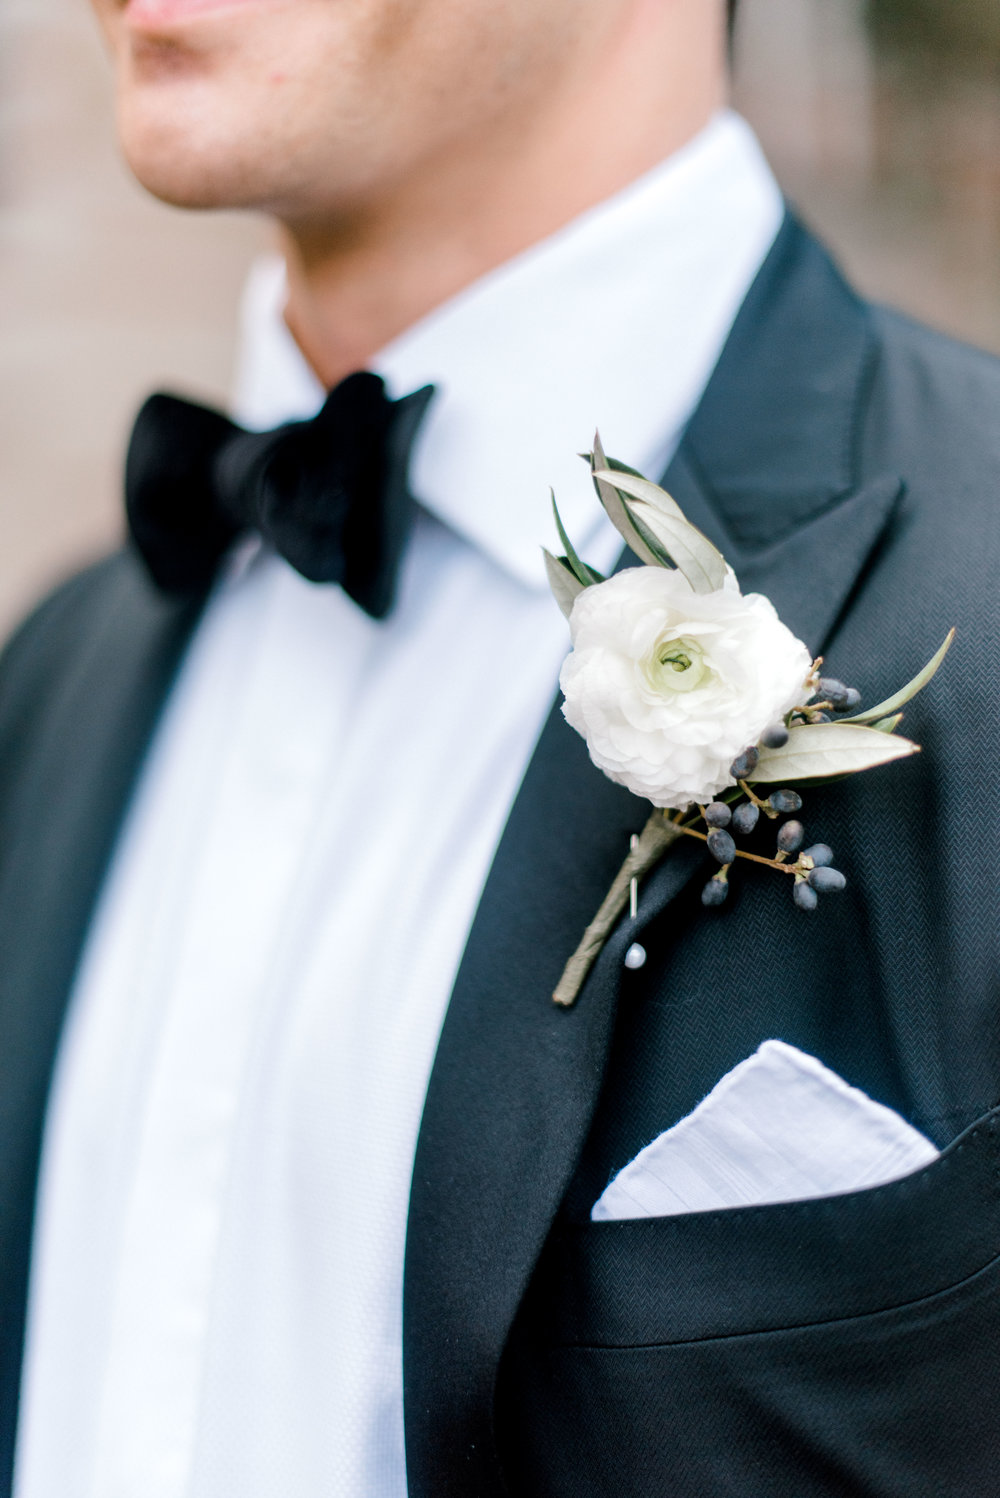 Boutonniere by Maxit Flower Design, captured by Josh and Dana Fernandez Photography